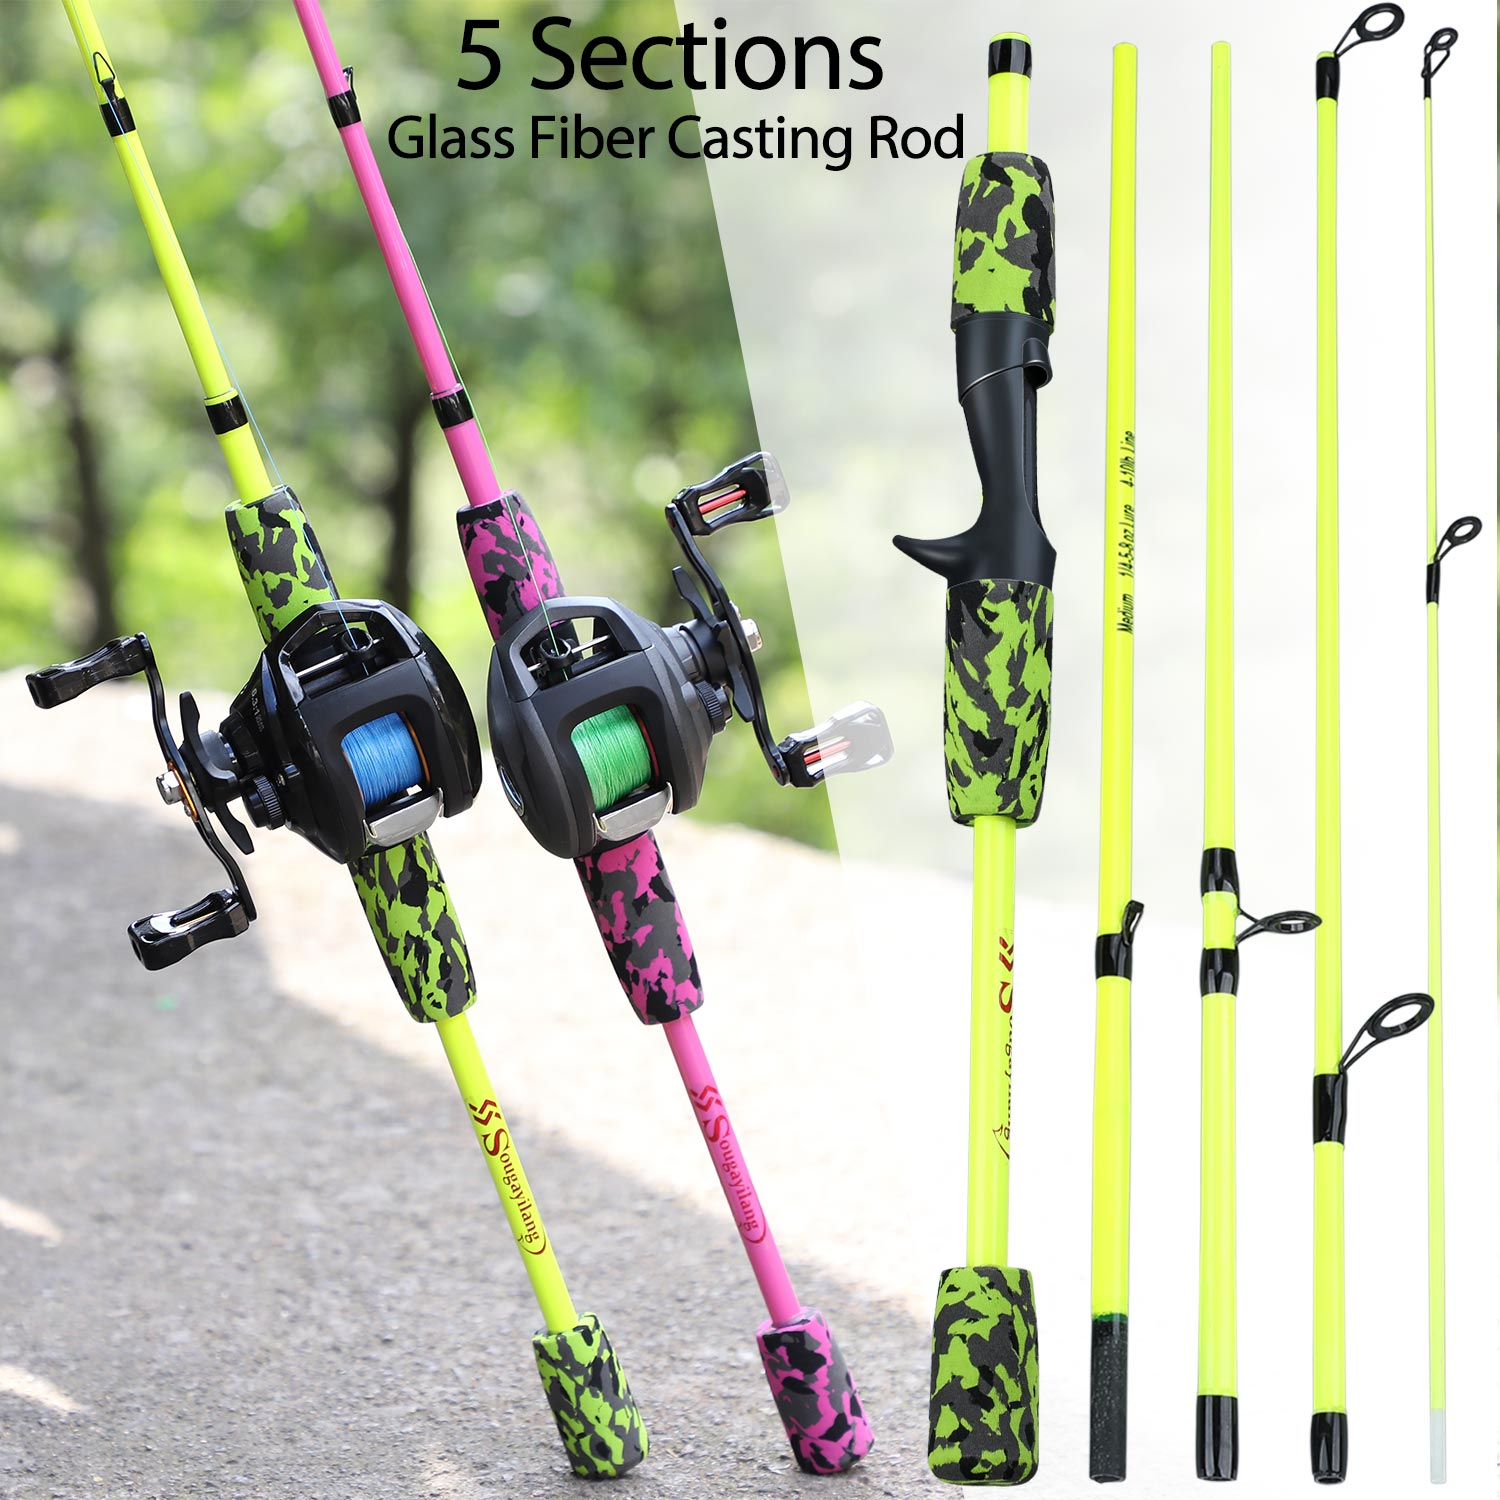 Sougayilang 5 Section Portable Travel Fishing Rod Ultralight Weight